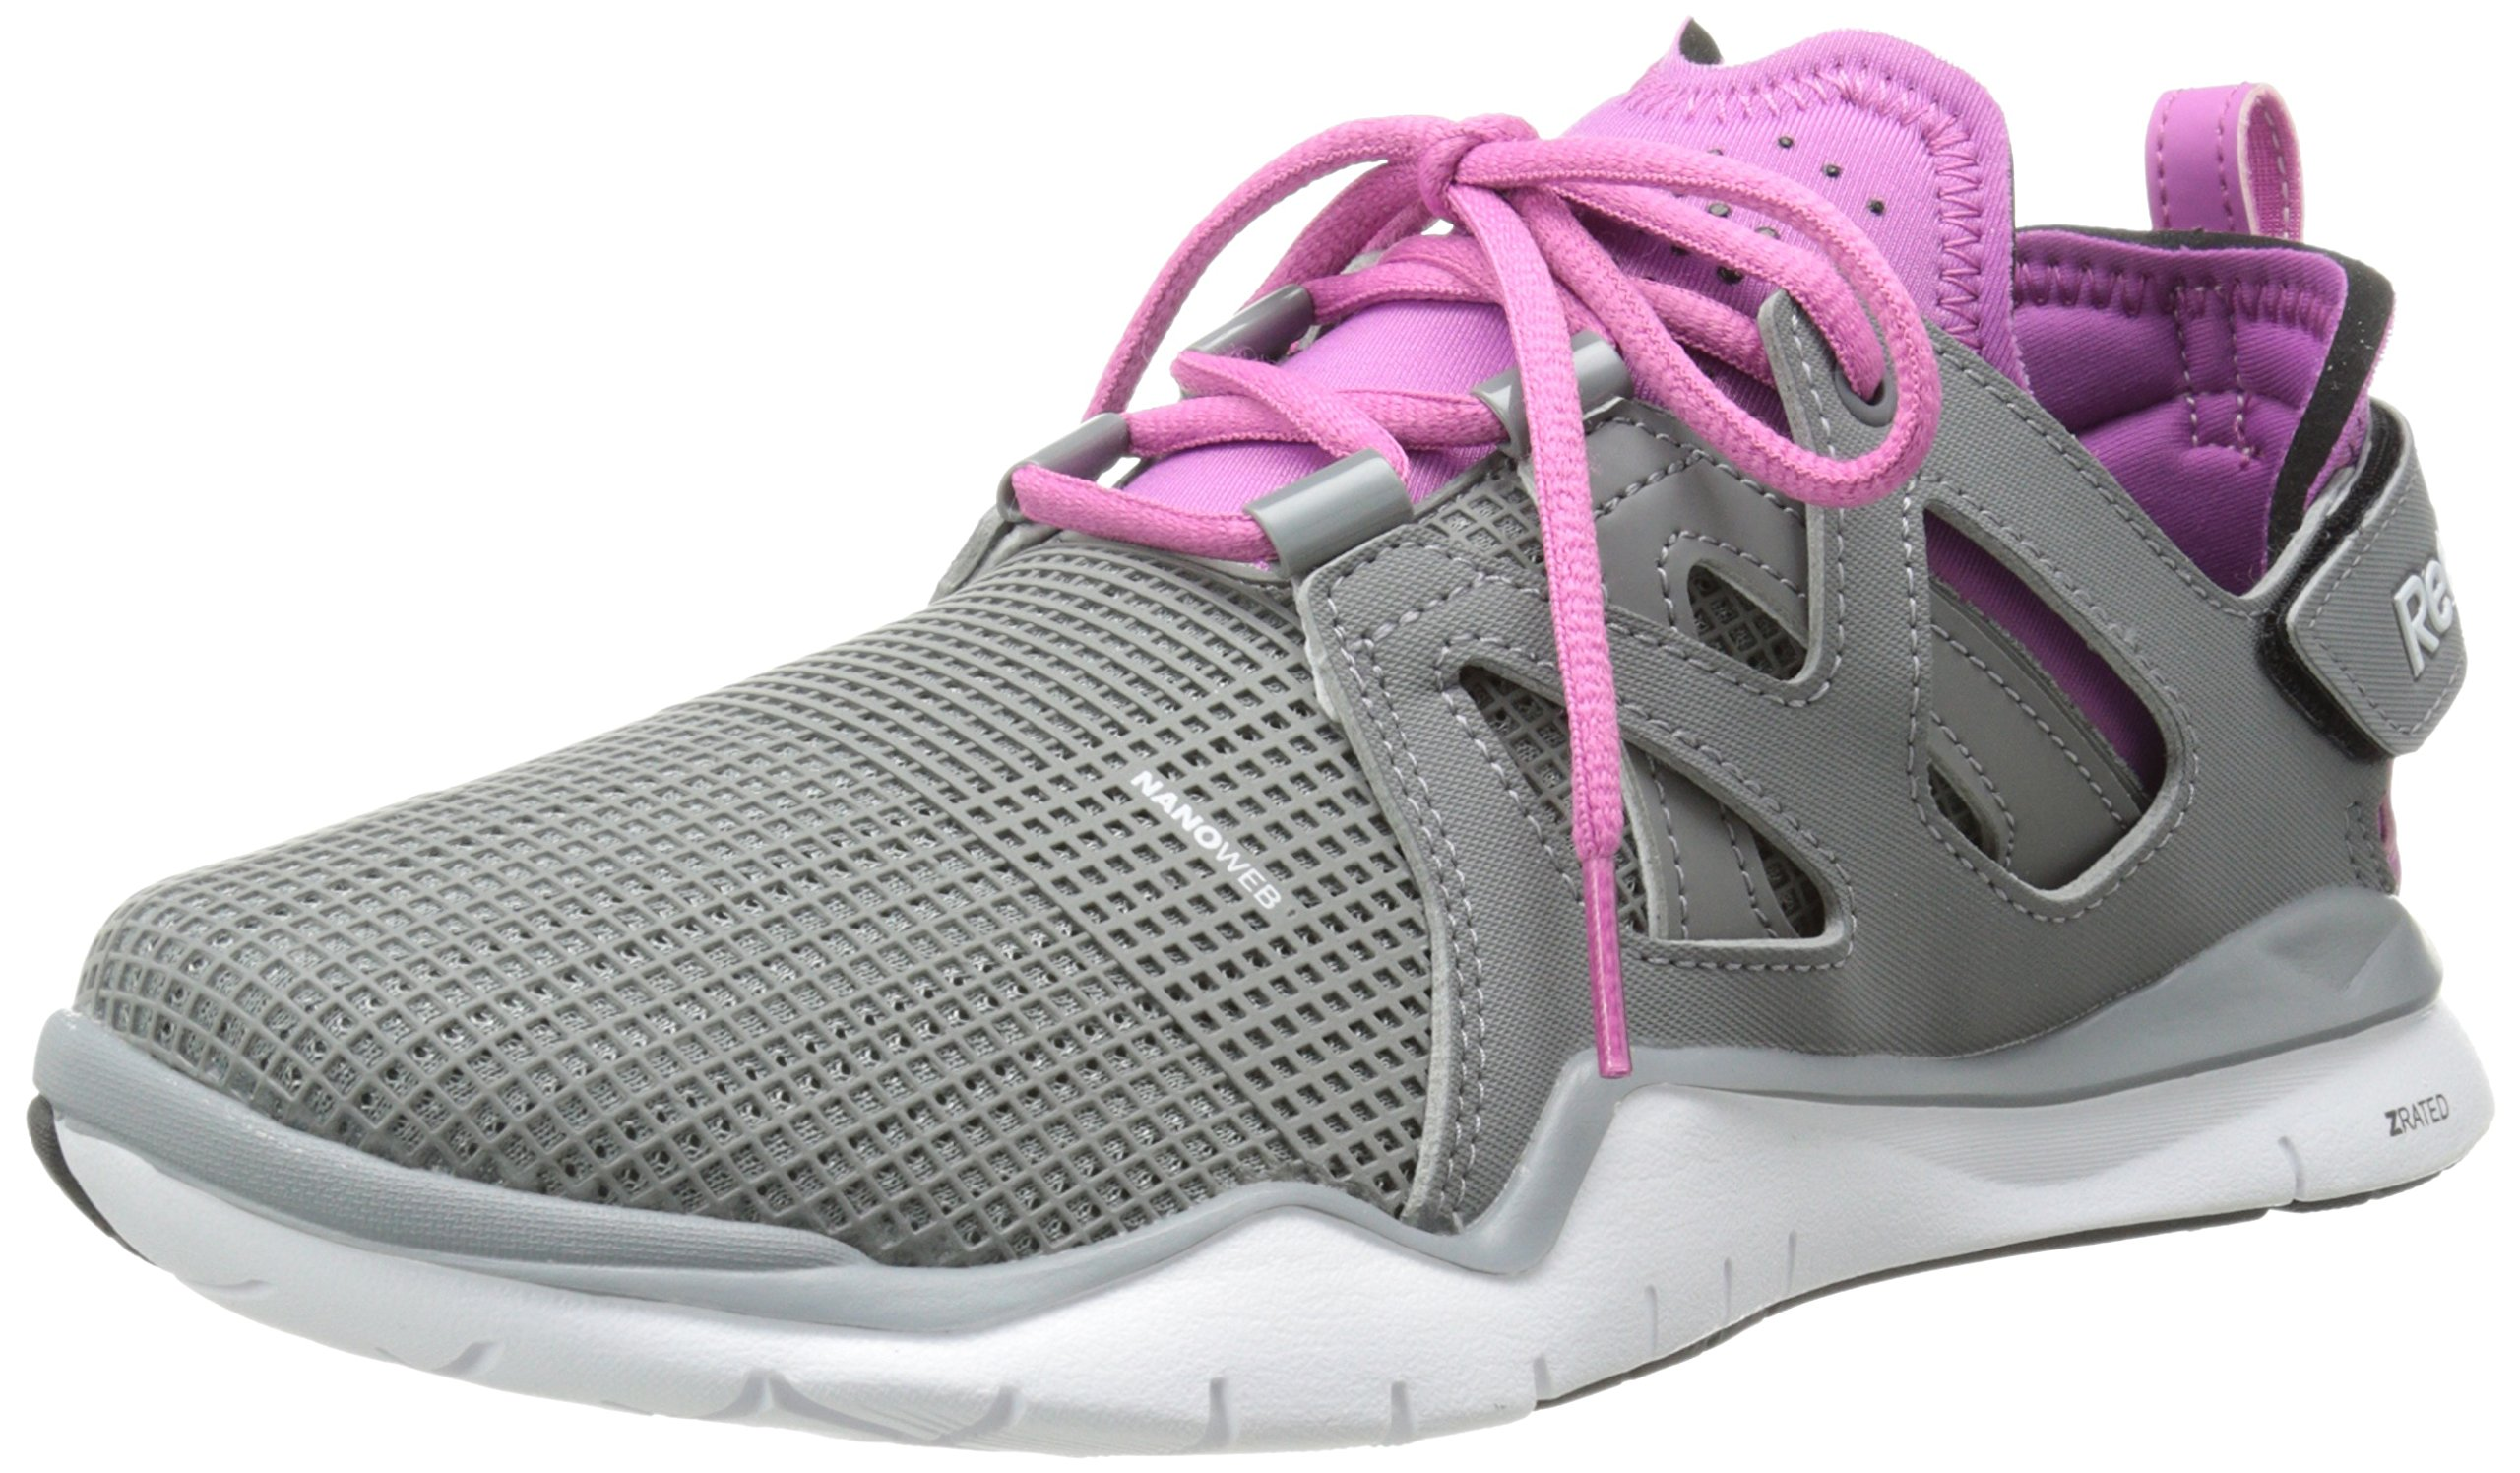 Reebok Women's Zcut TR Training Shoe